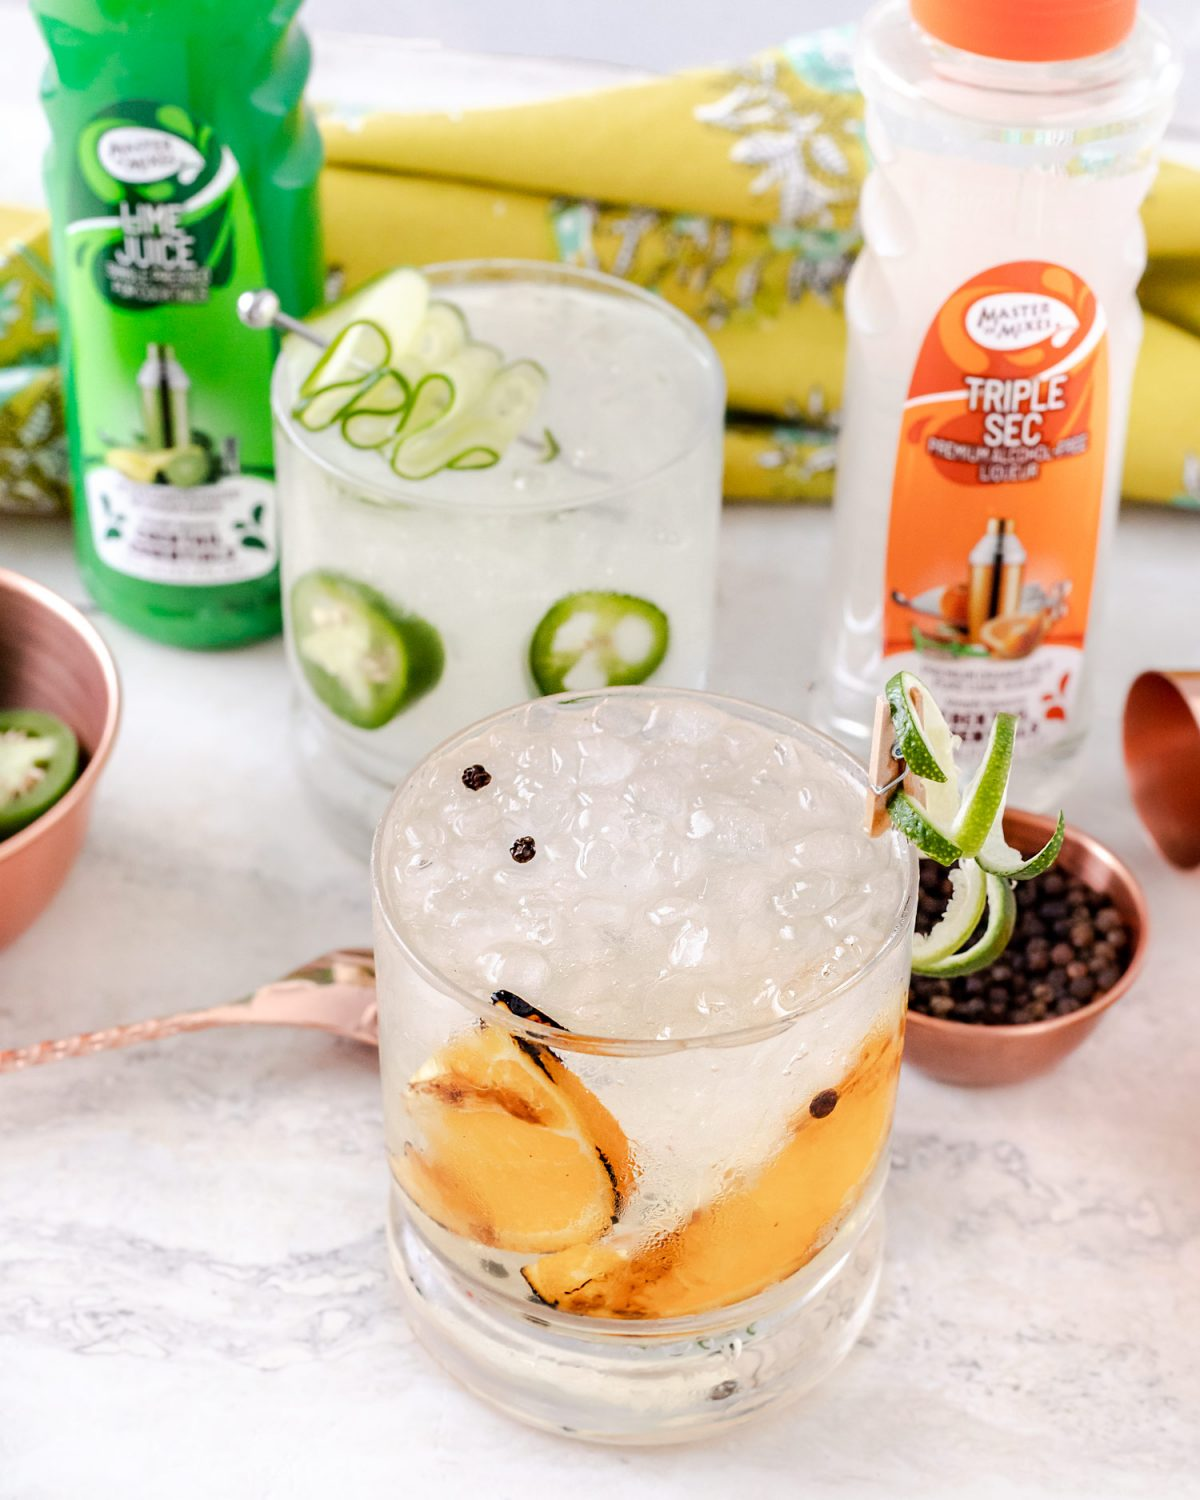 Gin & Tonic two different ways, one as a Jalapeño Cucumber Gin & Tonic and the other Smoked Sweet Orange and Peppercorn Gin & Tonic. These are the perfect spring cocktail recipes and are easy to make thanks to Master of Mixes Cocktail Essentials! #sponsored #ElleTalk #MasterofMixes #CocktailRecipe #DrinkRecipe #Gin #GinCocktail